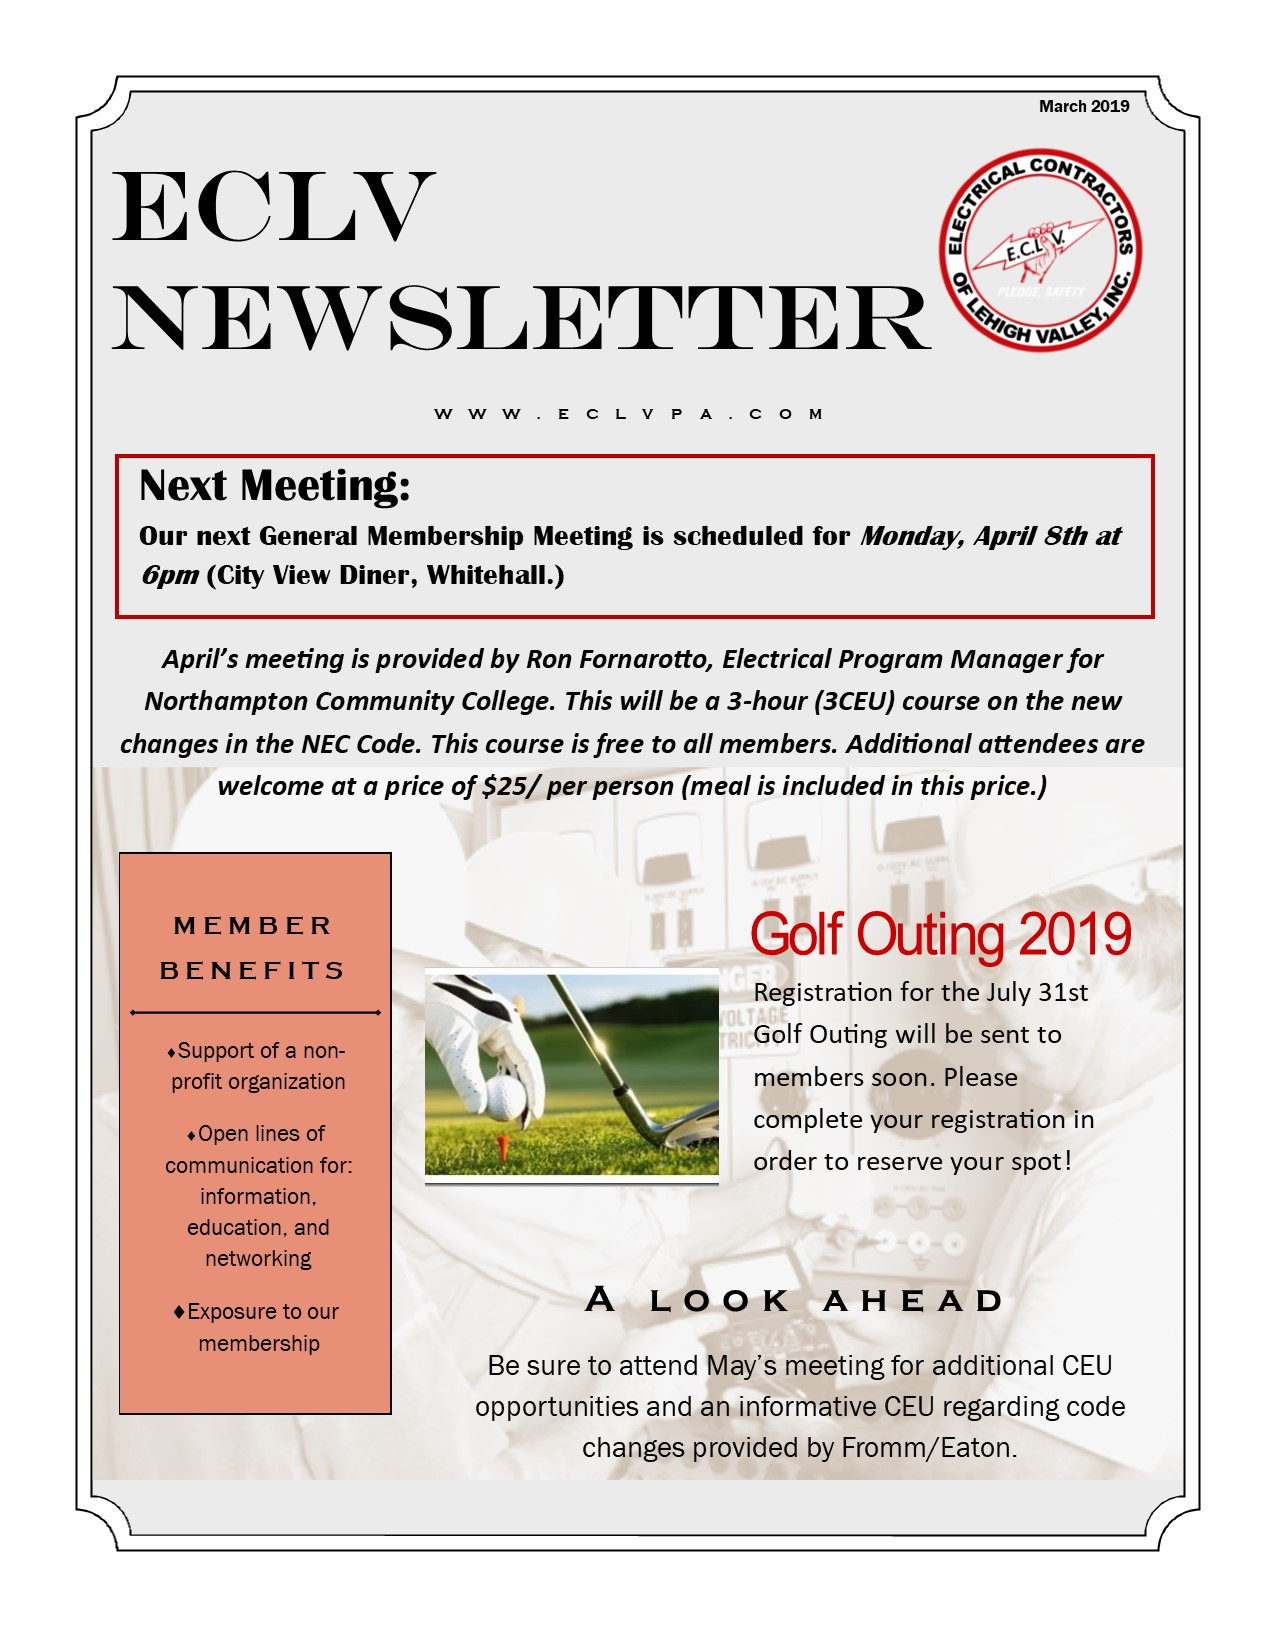 ECLV March newsletter.jpg